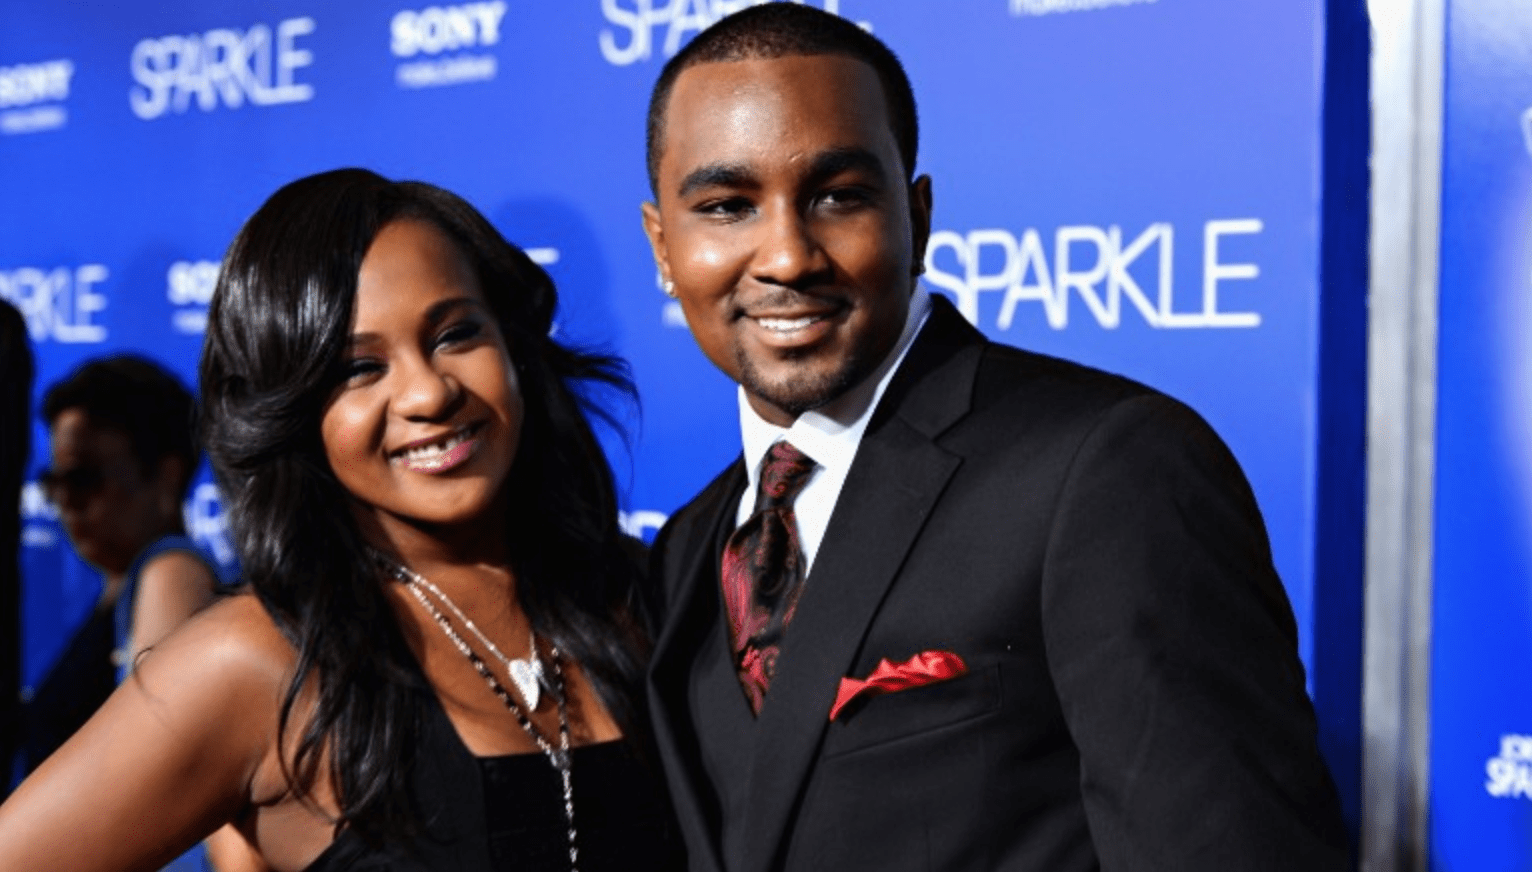 Nick Gordon dies three years after he was found liable for death of Bobbi Kristina Brown